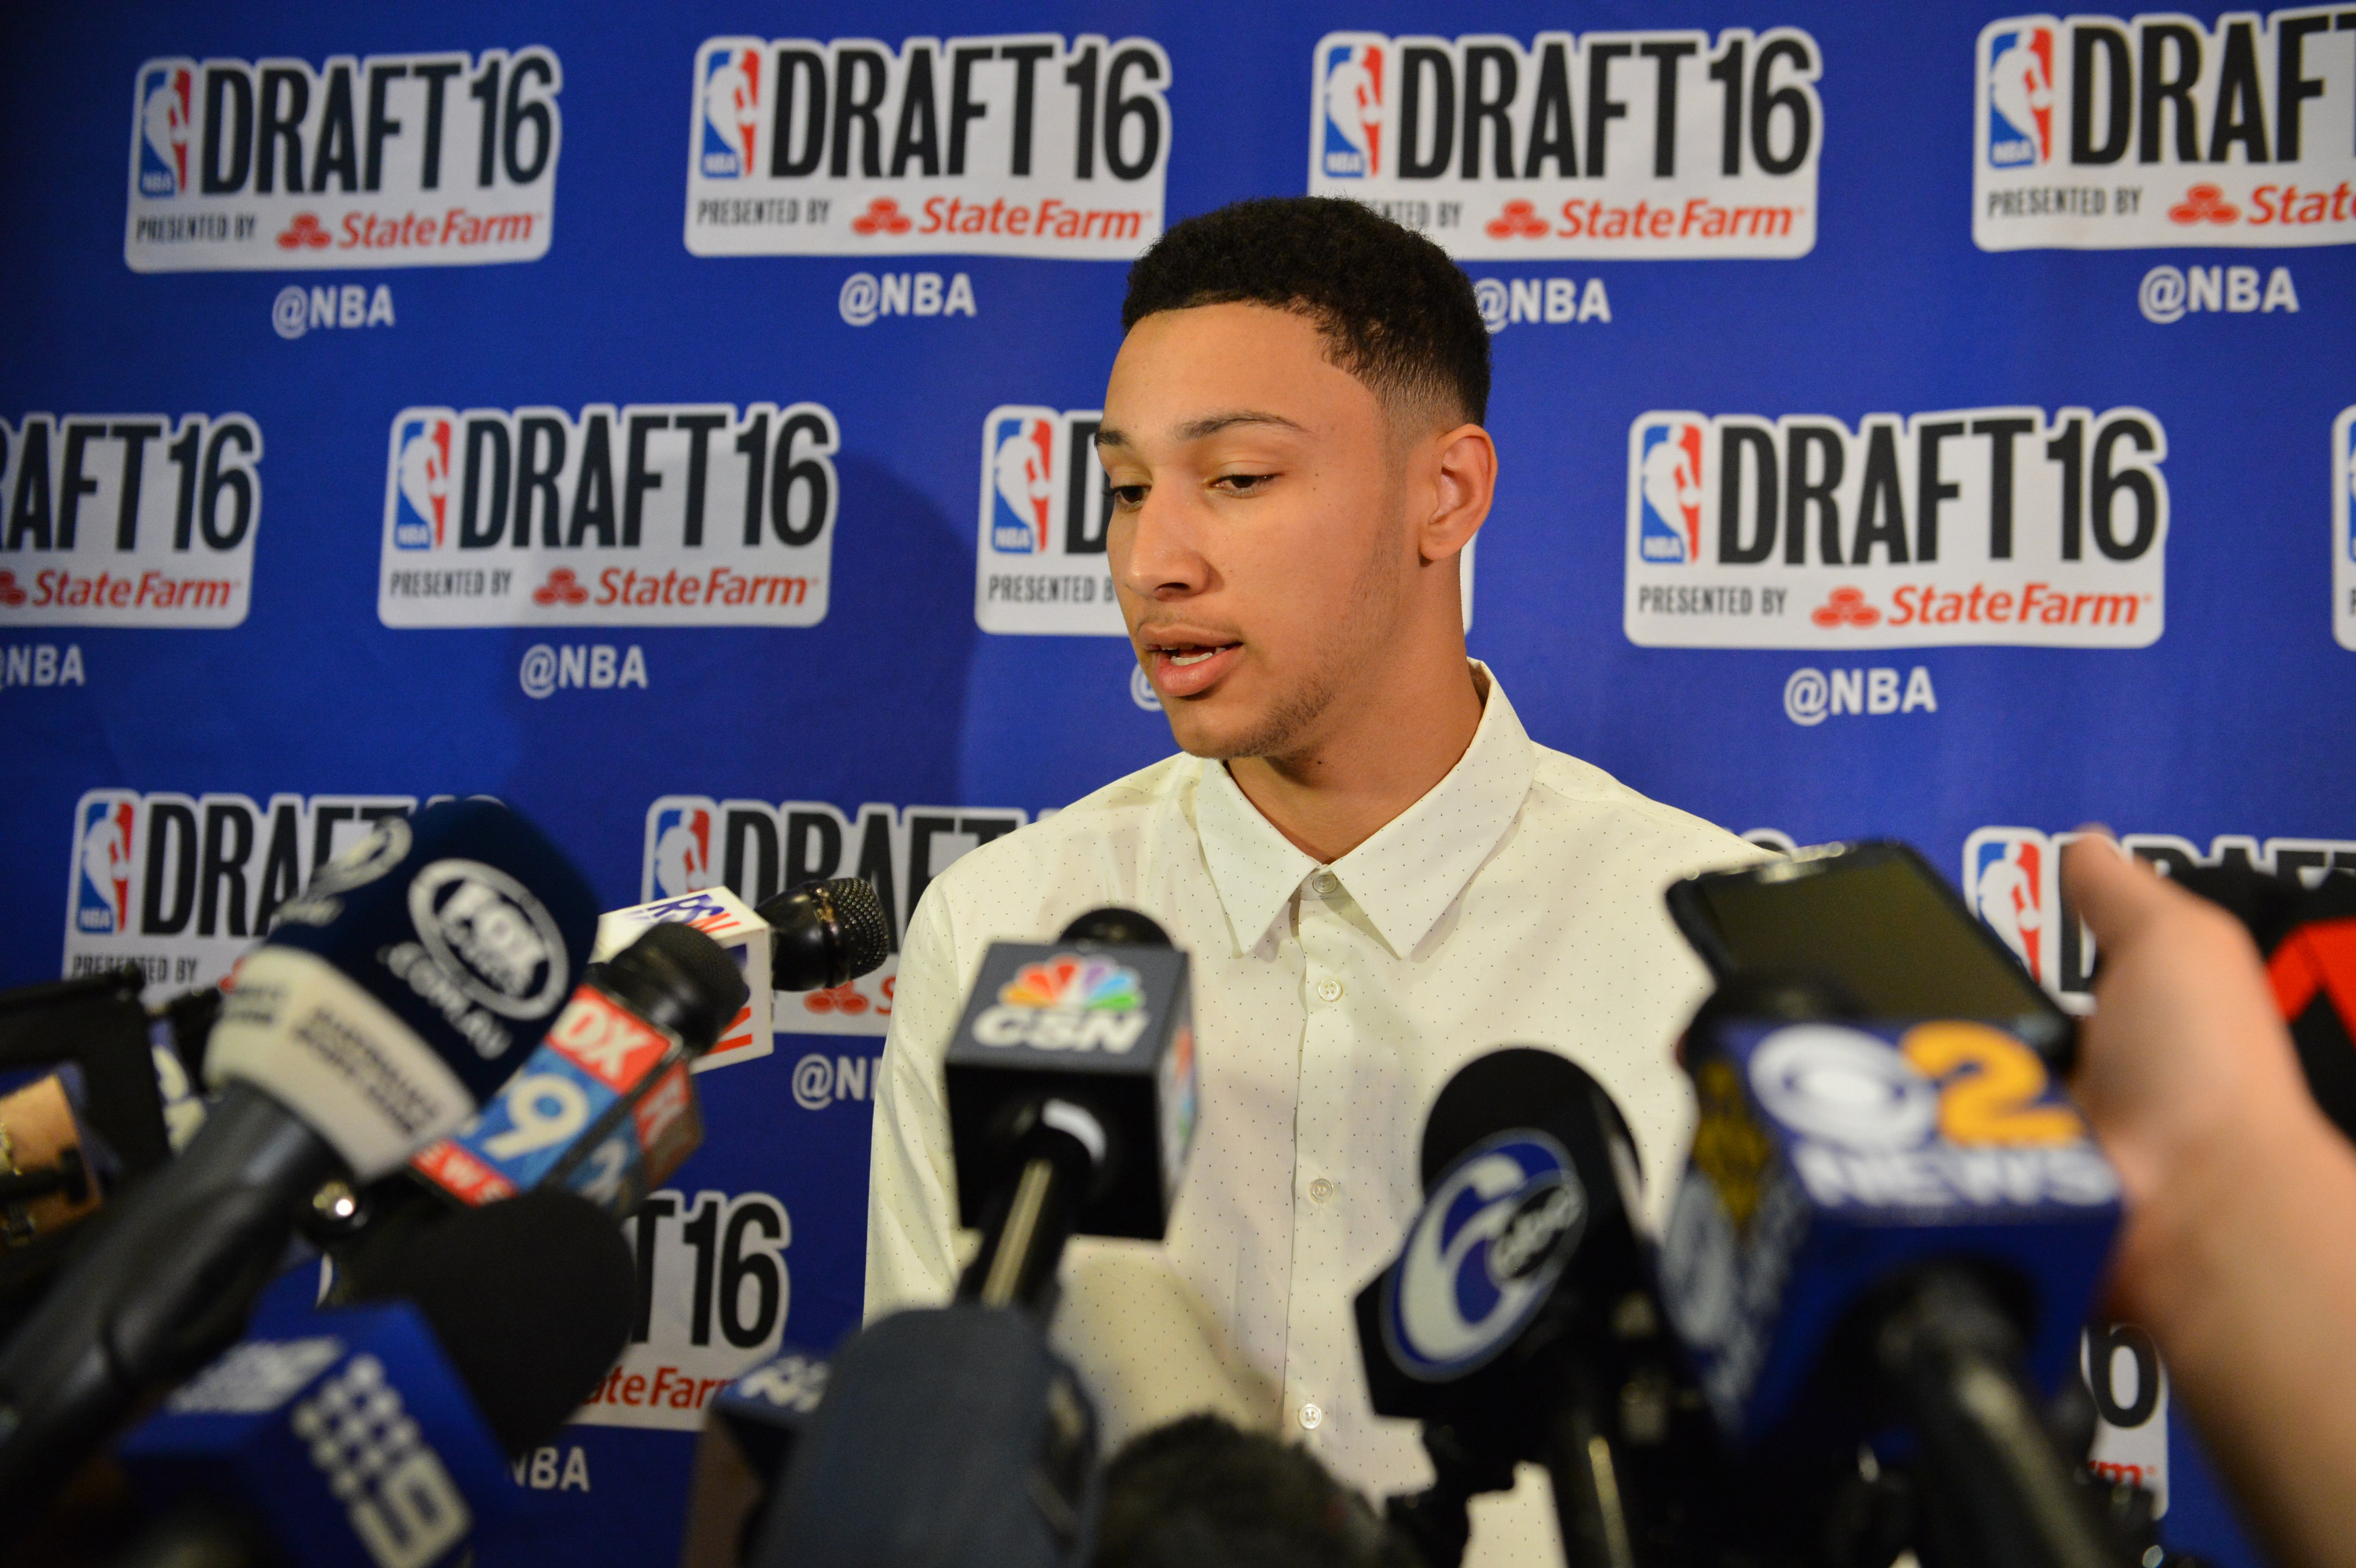 NEW YORK - JUNE 22: NBA Draft Prospect, Ben Simmons speaks to the media during media availability as part of the 2016 NBA Draft on June 22, 2016 at the Grand Hyatt New York in New York City. (Photo by David Dow/NBAE via Getty Images)